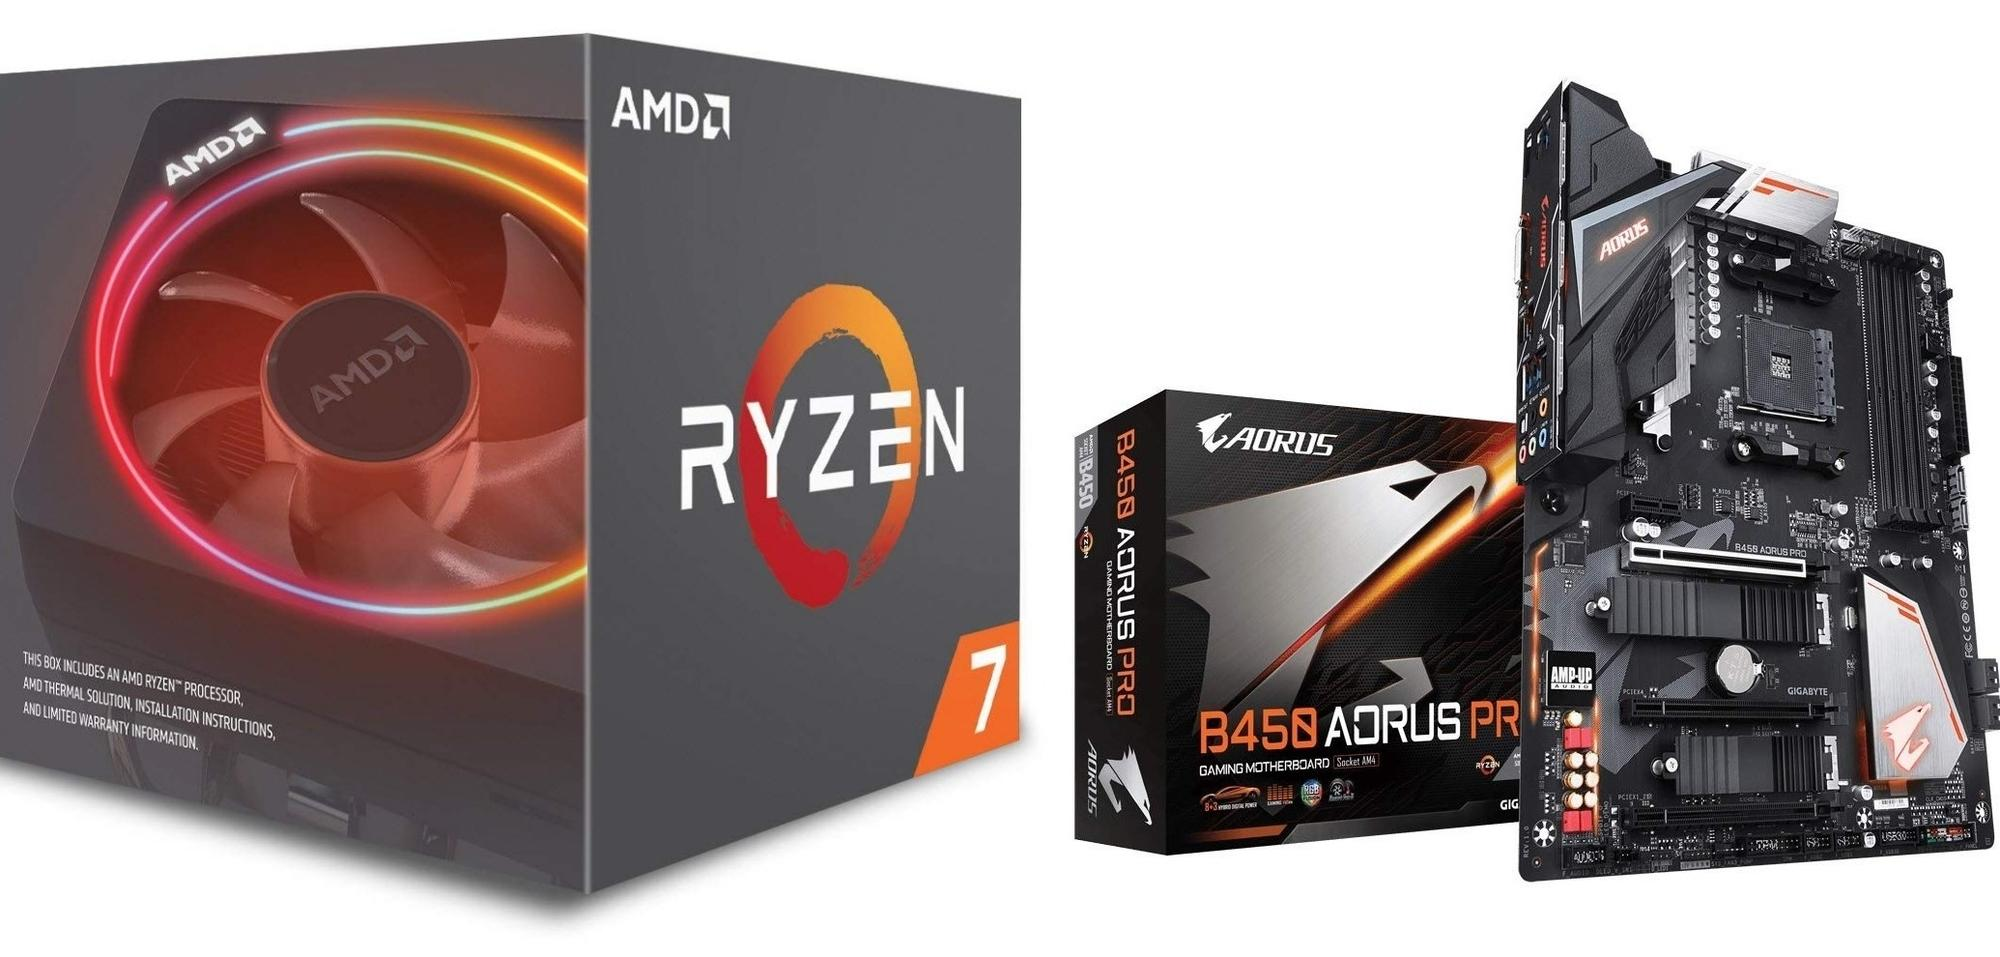 AMD Ryzen 7 2700X PROCESSOR BUNDLE with Gigabyte B450 AORUS PRO MOTHERBOARD